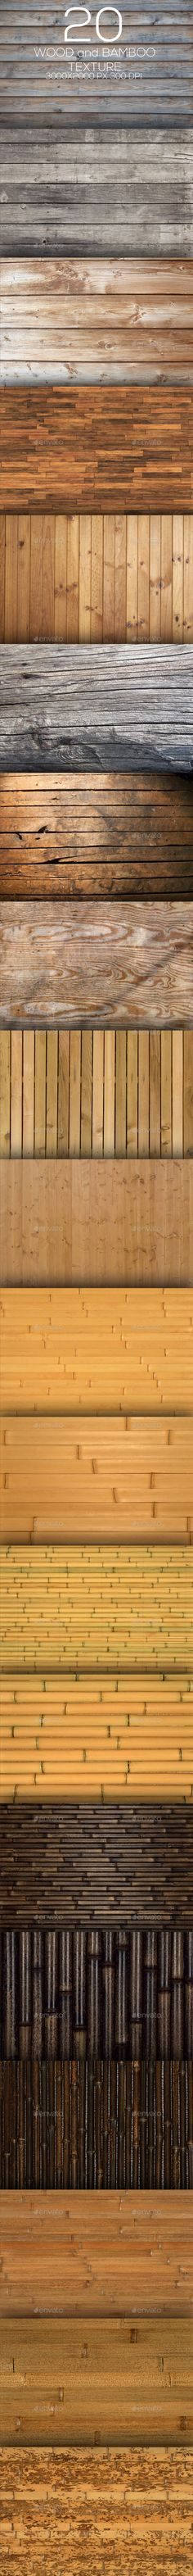 20 Wood Texture V.13 — Photoshop PSD #brown #background • Available here → https://graphicriver.net/item/20-wood-texture-v13/10525712?ref=pxcr